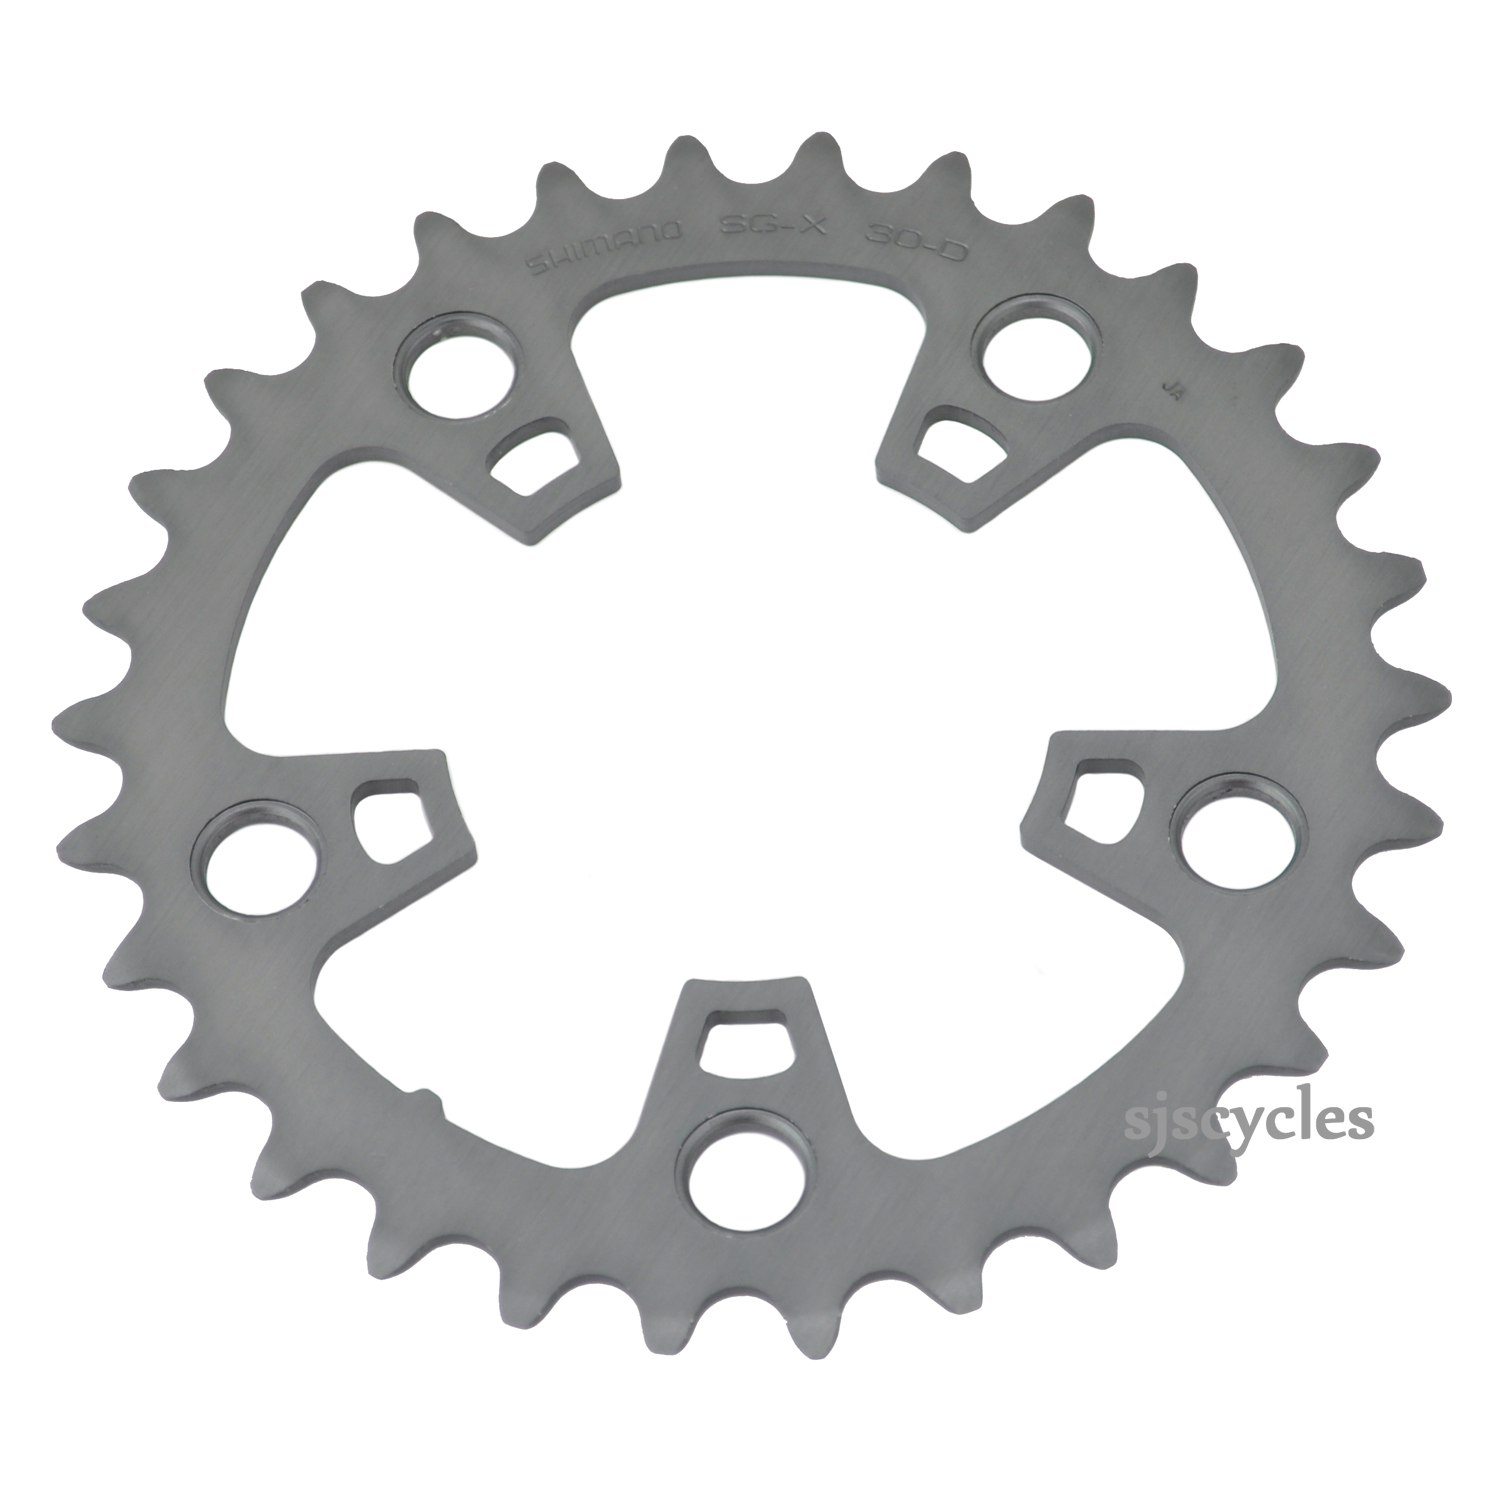 Shimano Ultegra FC-6703 Triple Replacement Outer Chainring 130 BCD x 52T D-Type